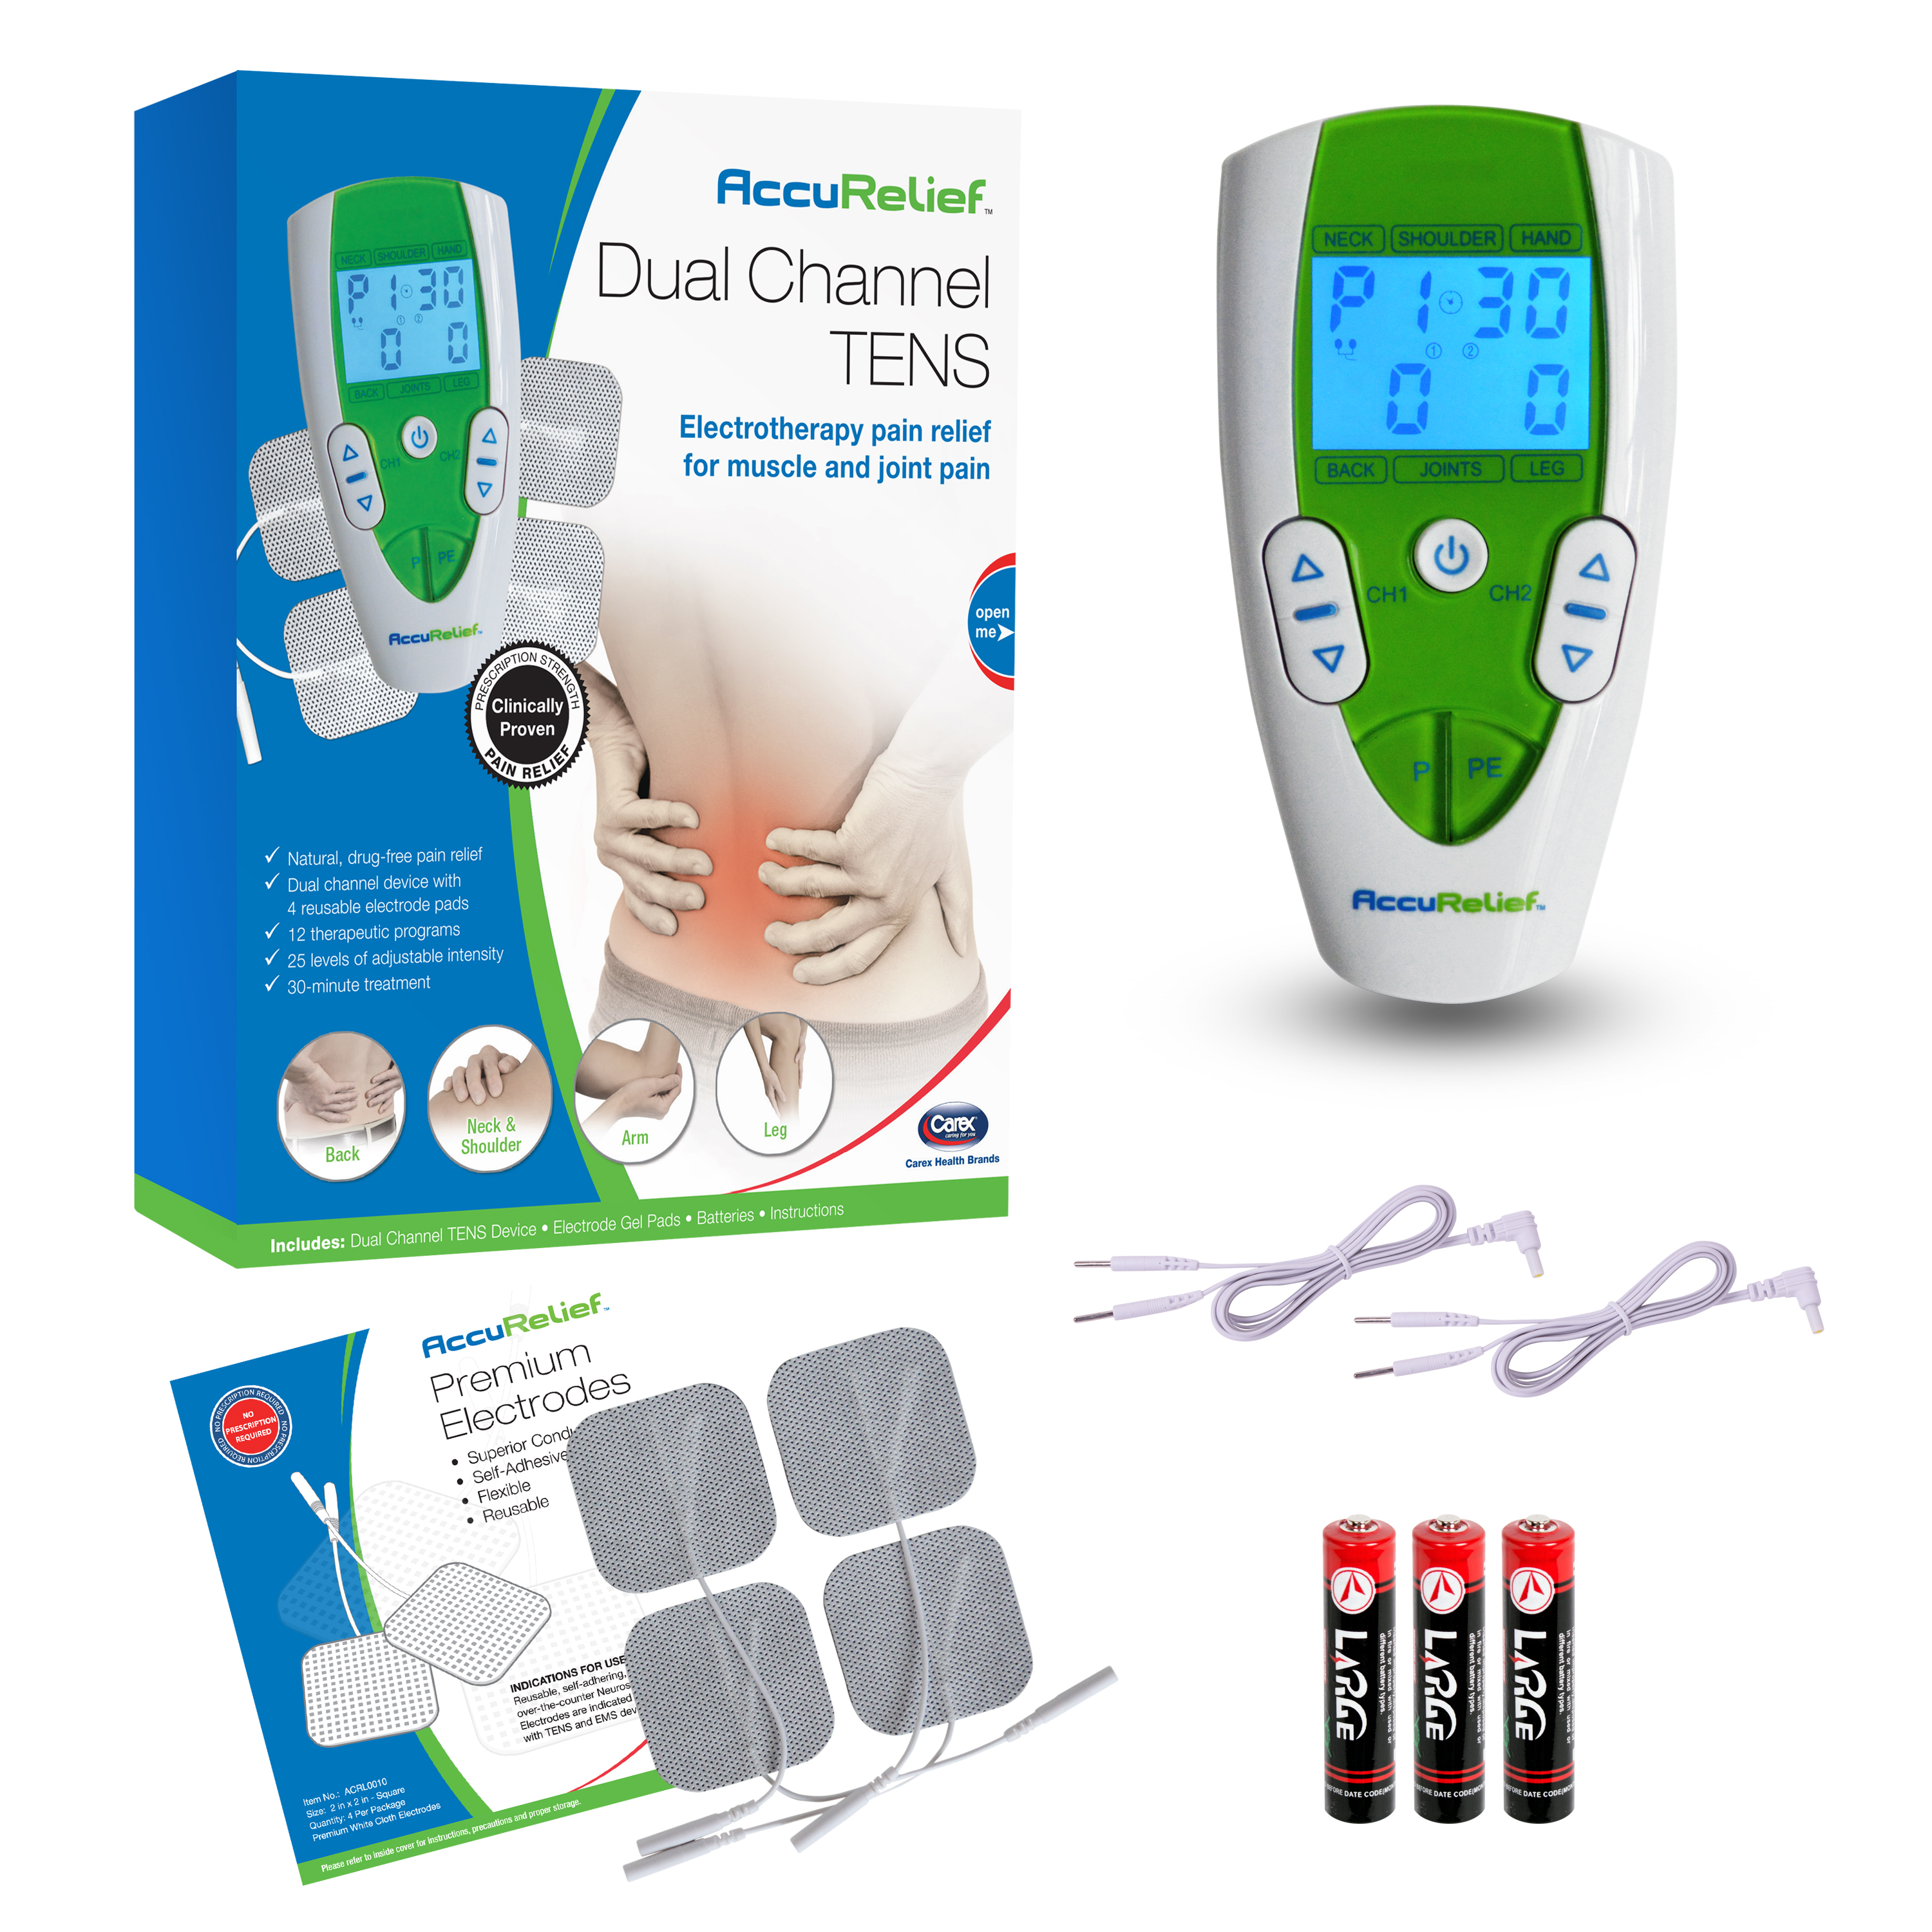 AccuRelief Dual Channel TENS Therapy Electrotherapy Pain Relief System